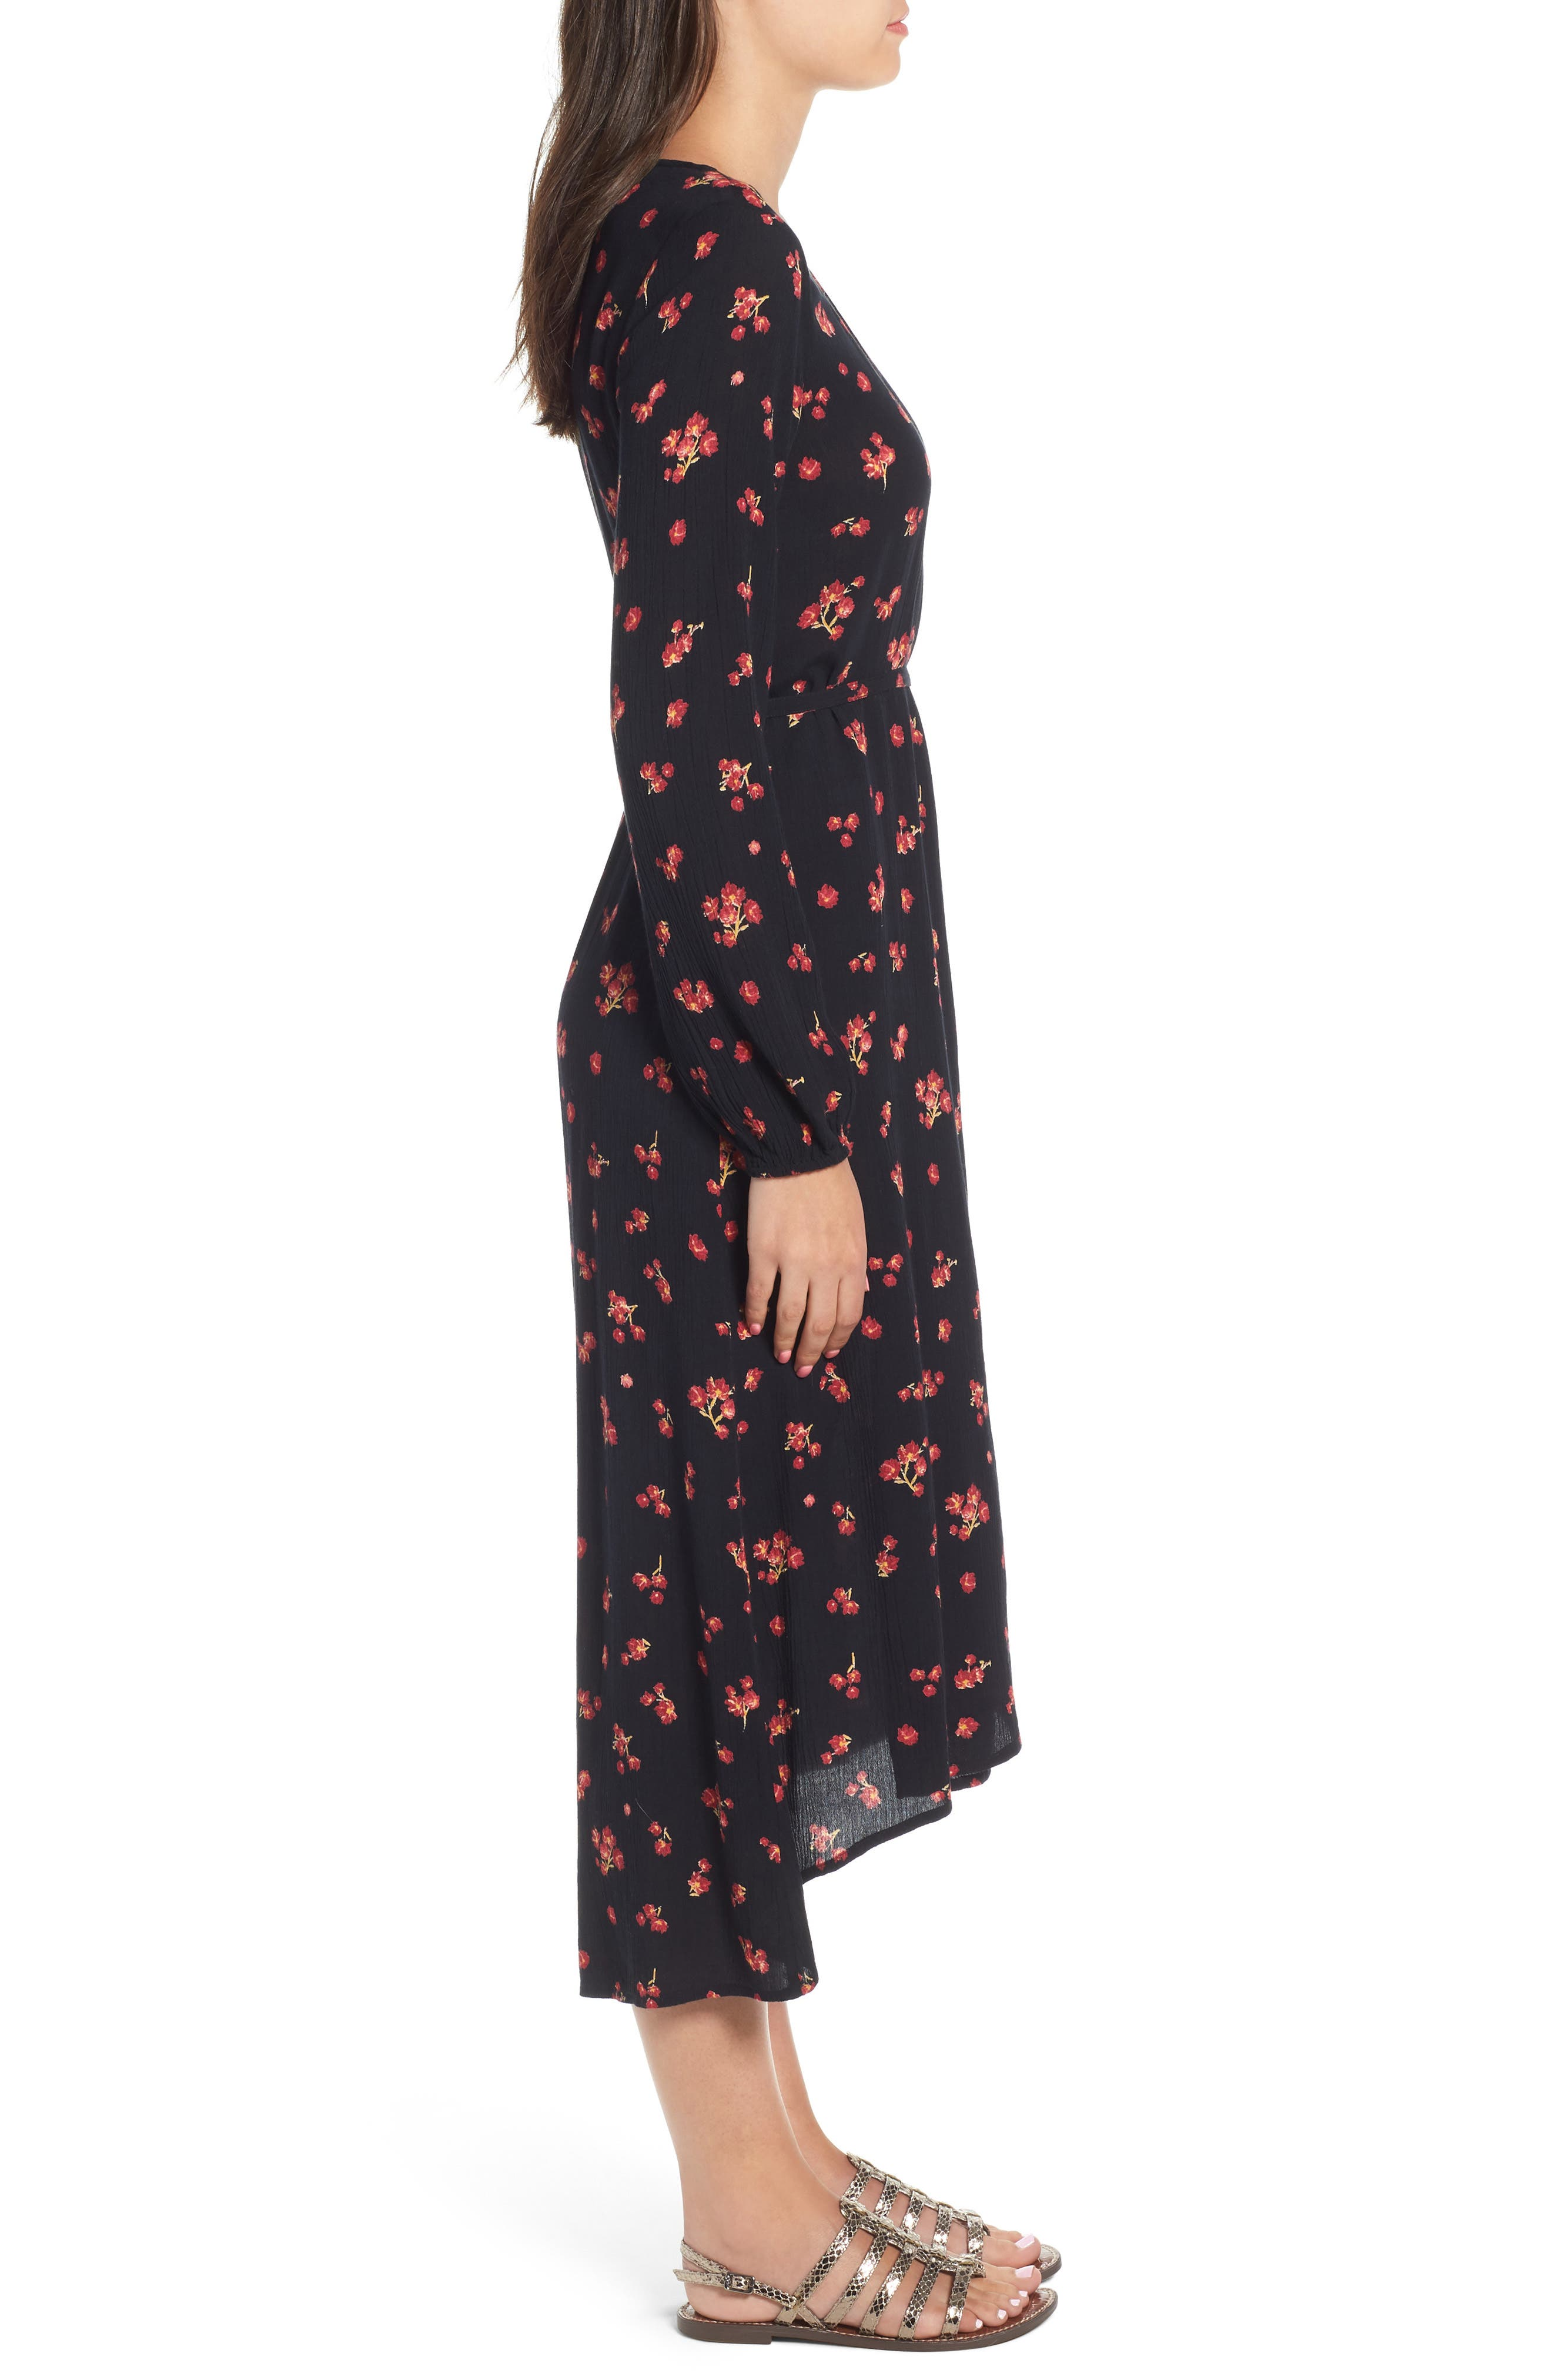 Forever Wild Floral Print Wrap Dress,                             Alternate thumbnail 3, color,                             001